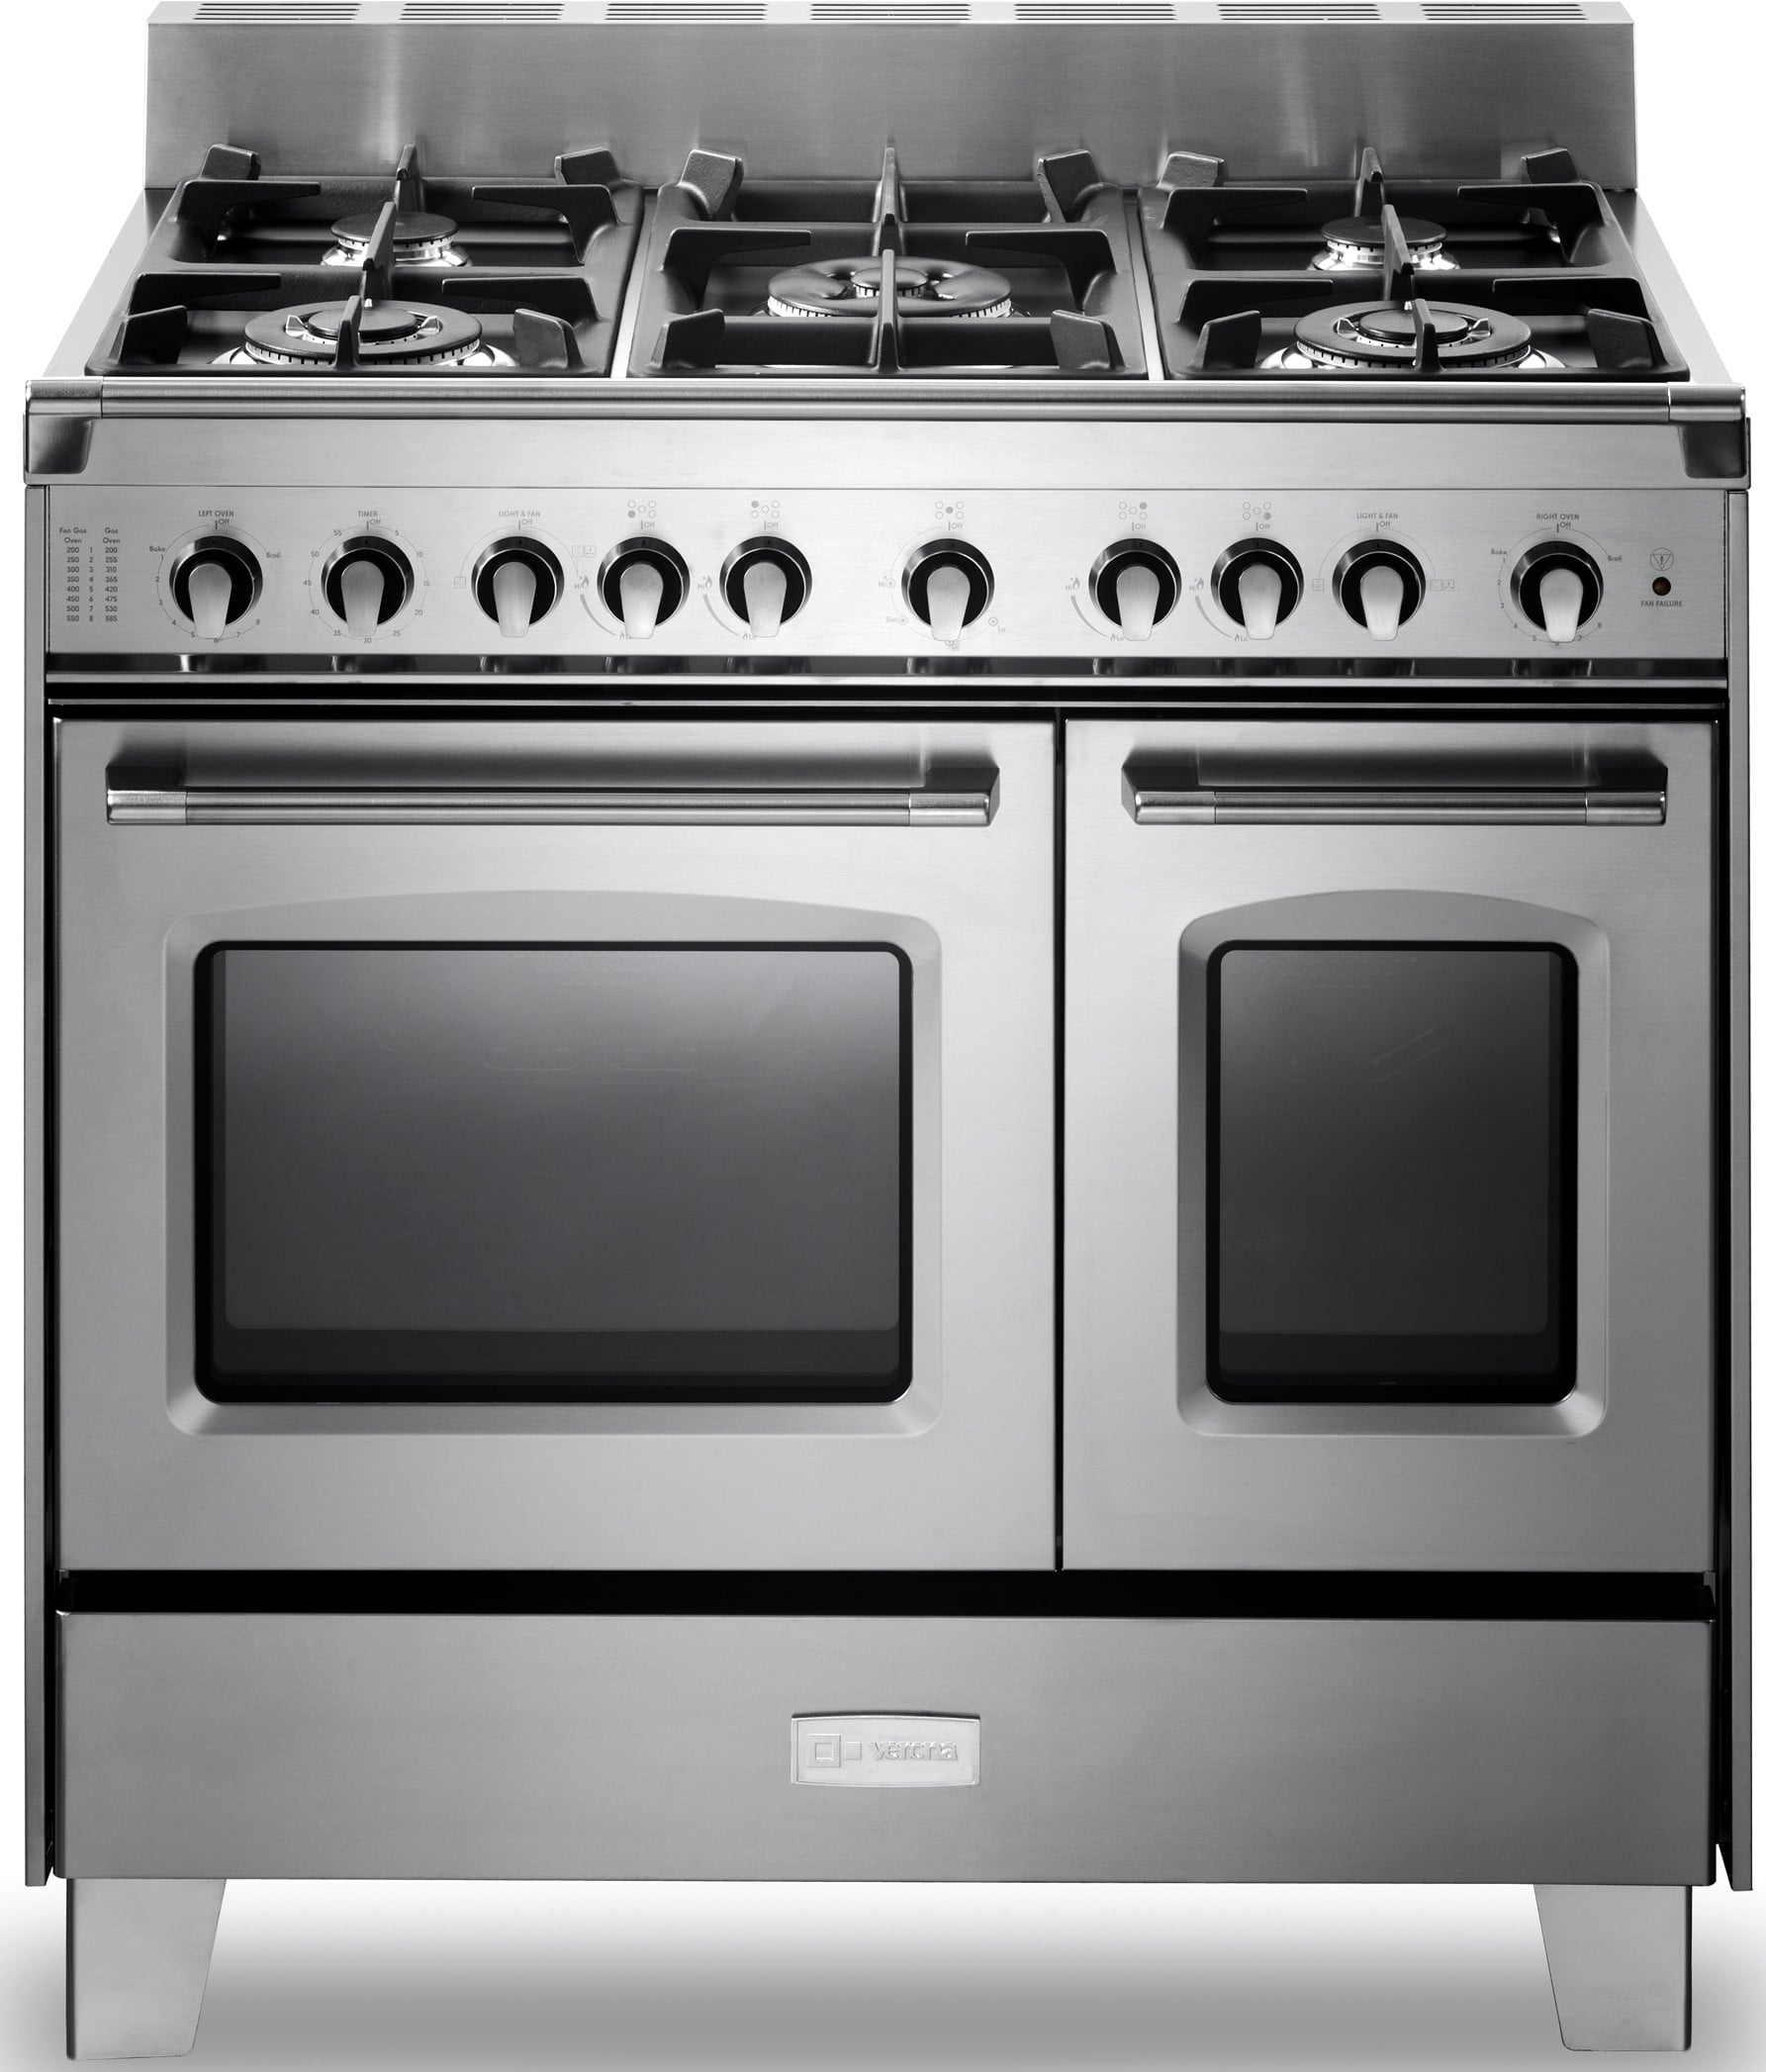 verona 36 inch prostyle gas range with 4 cu ft total oven capacity 5 sealed burners convection main oven infrared broiler bell timer